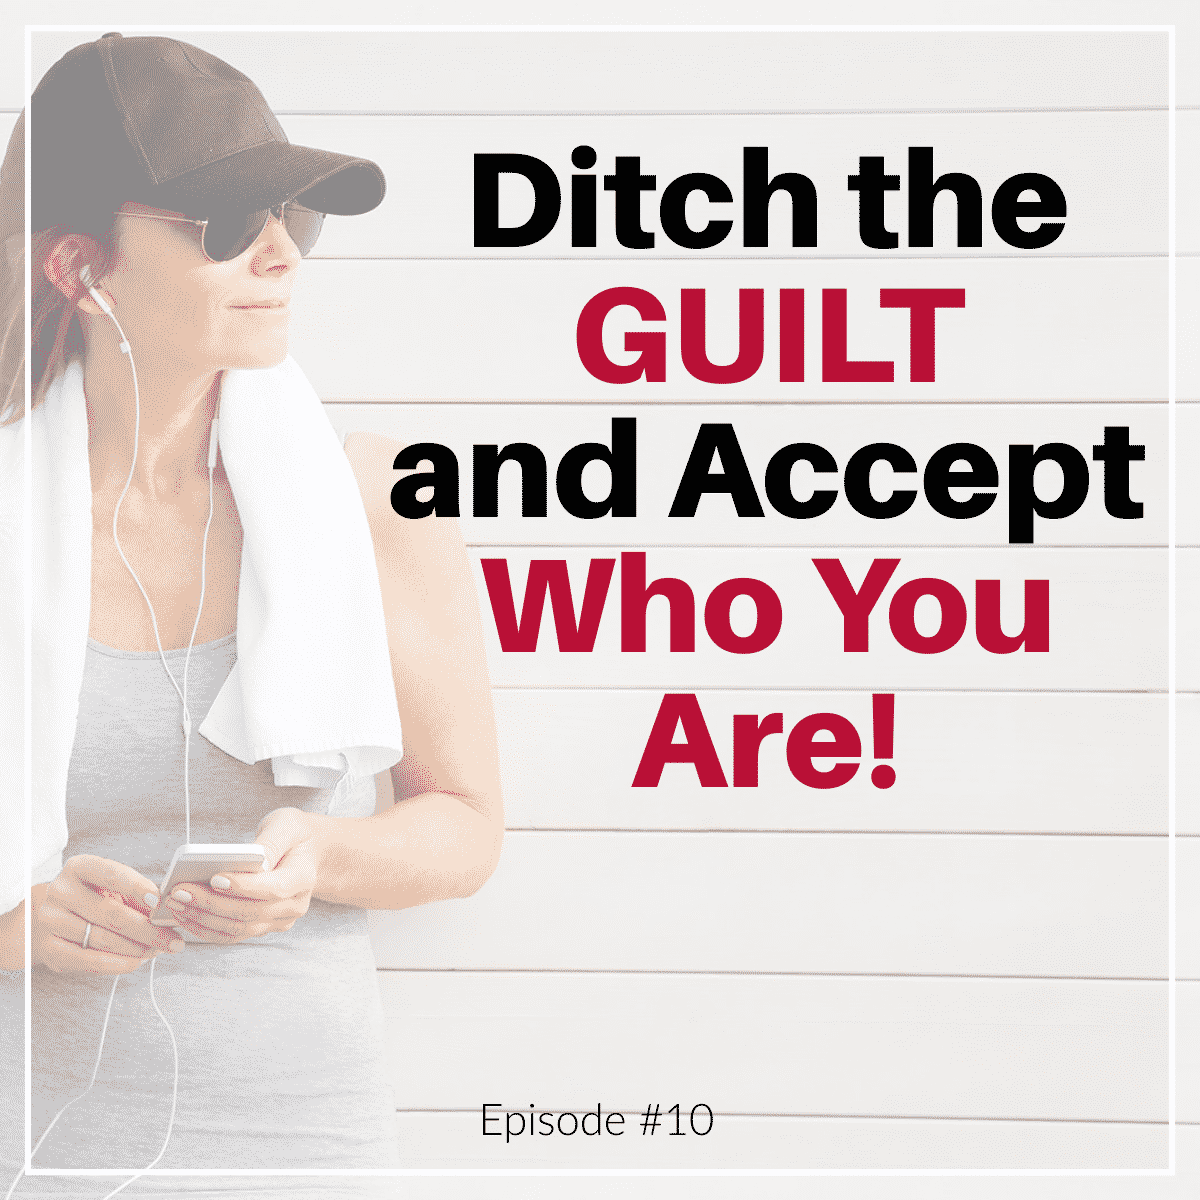 Accept who you are